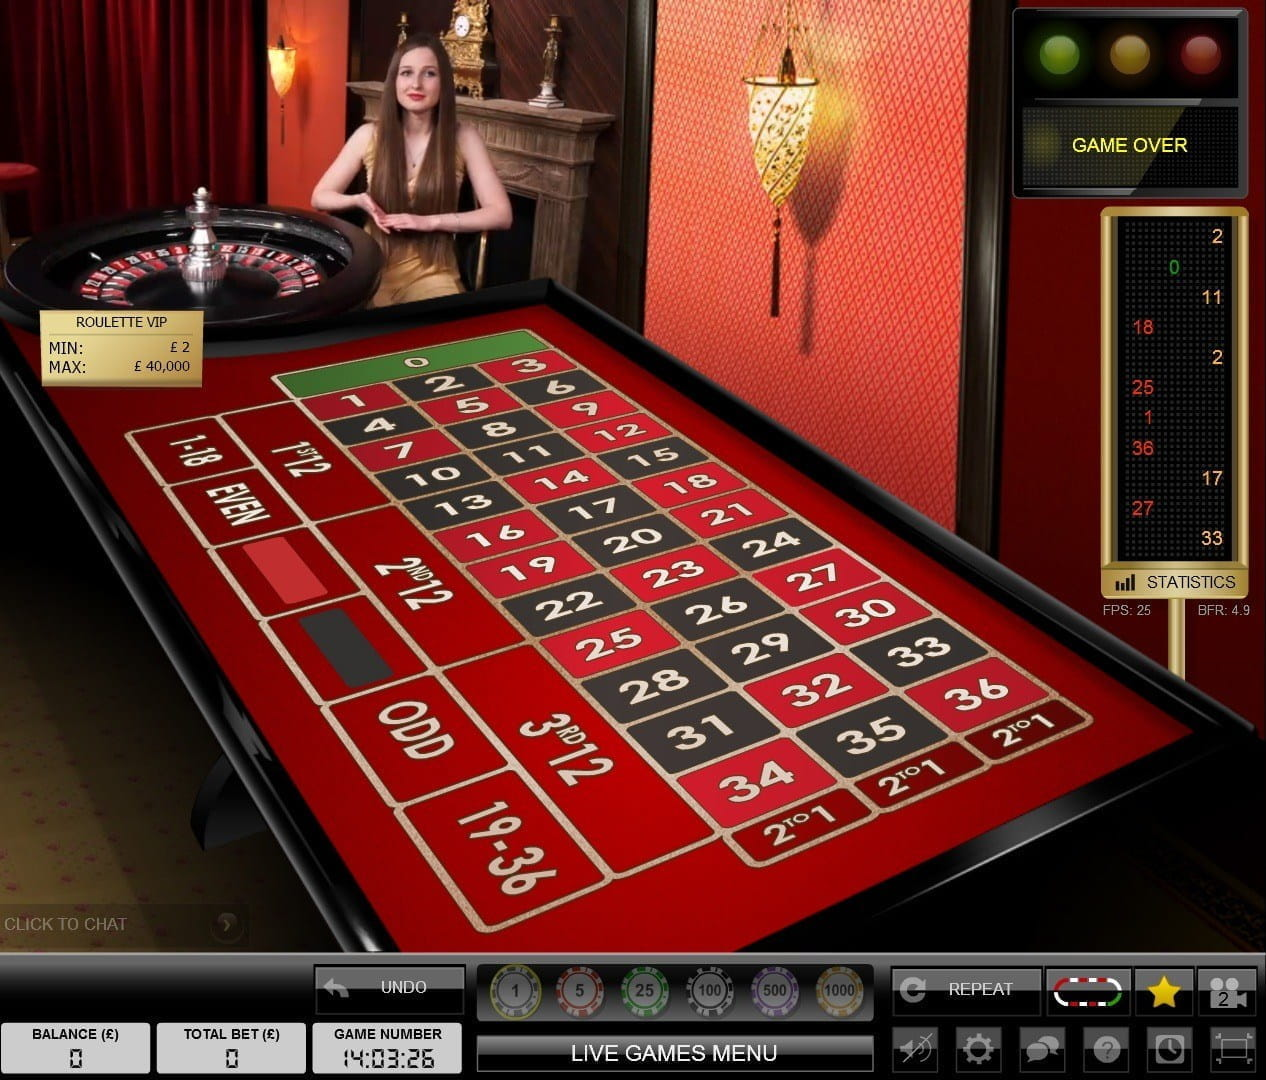 Roulette Review - Hot Promos & Table Limits